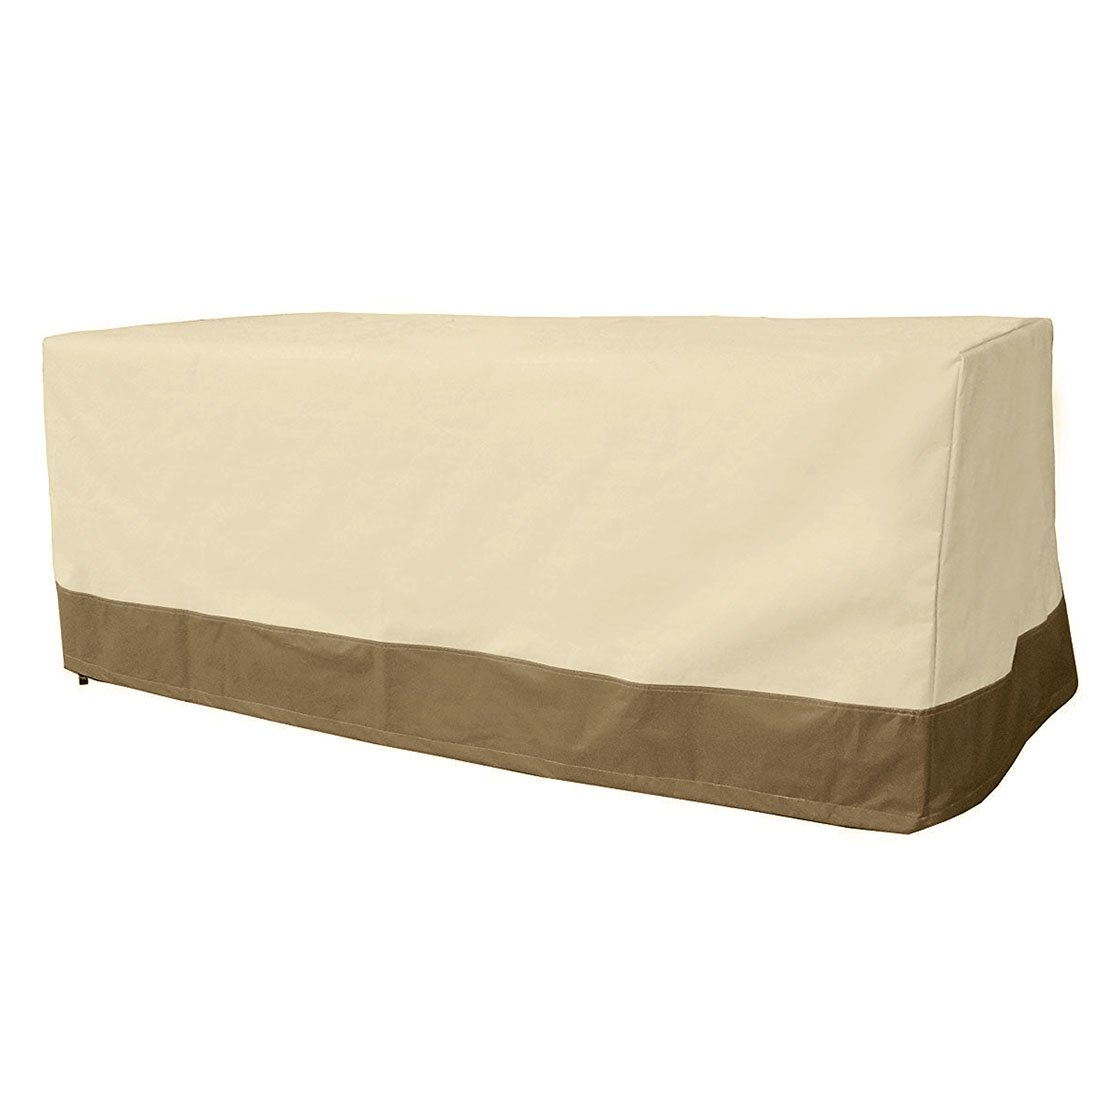 Vanteriam Outdoor Rectangular / Oval Patio Dining Table Cover-Waterproof Large Outdoor Patio Furniture Cover for Dining Table